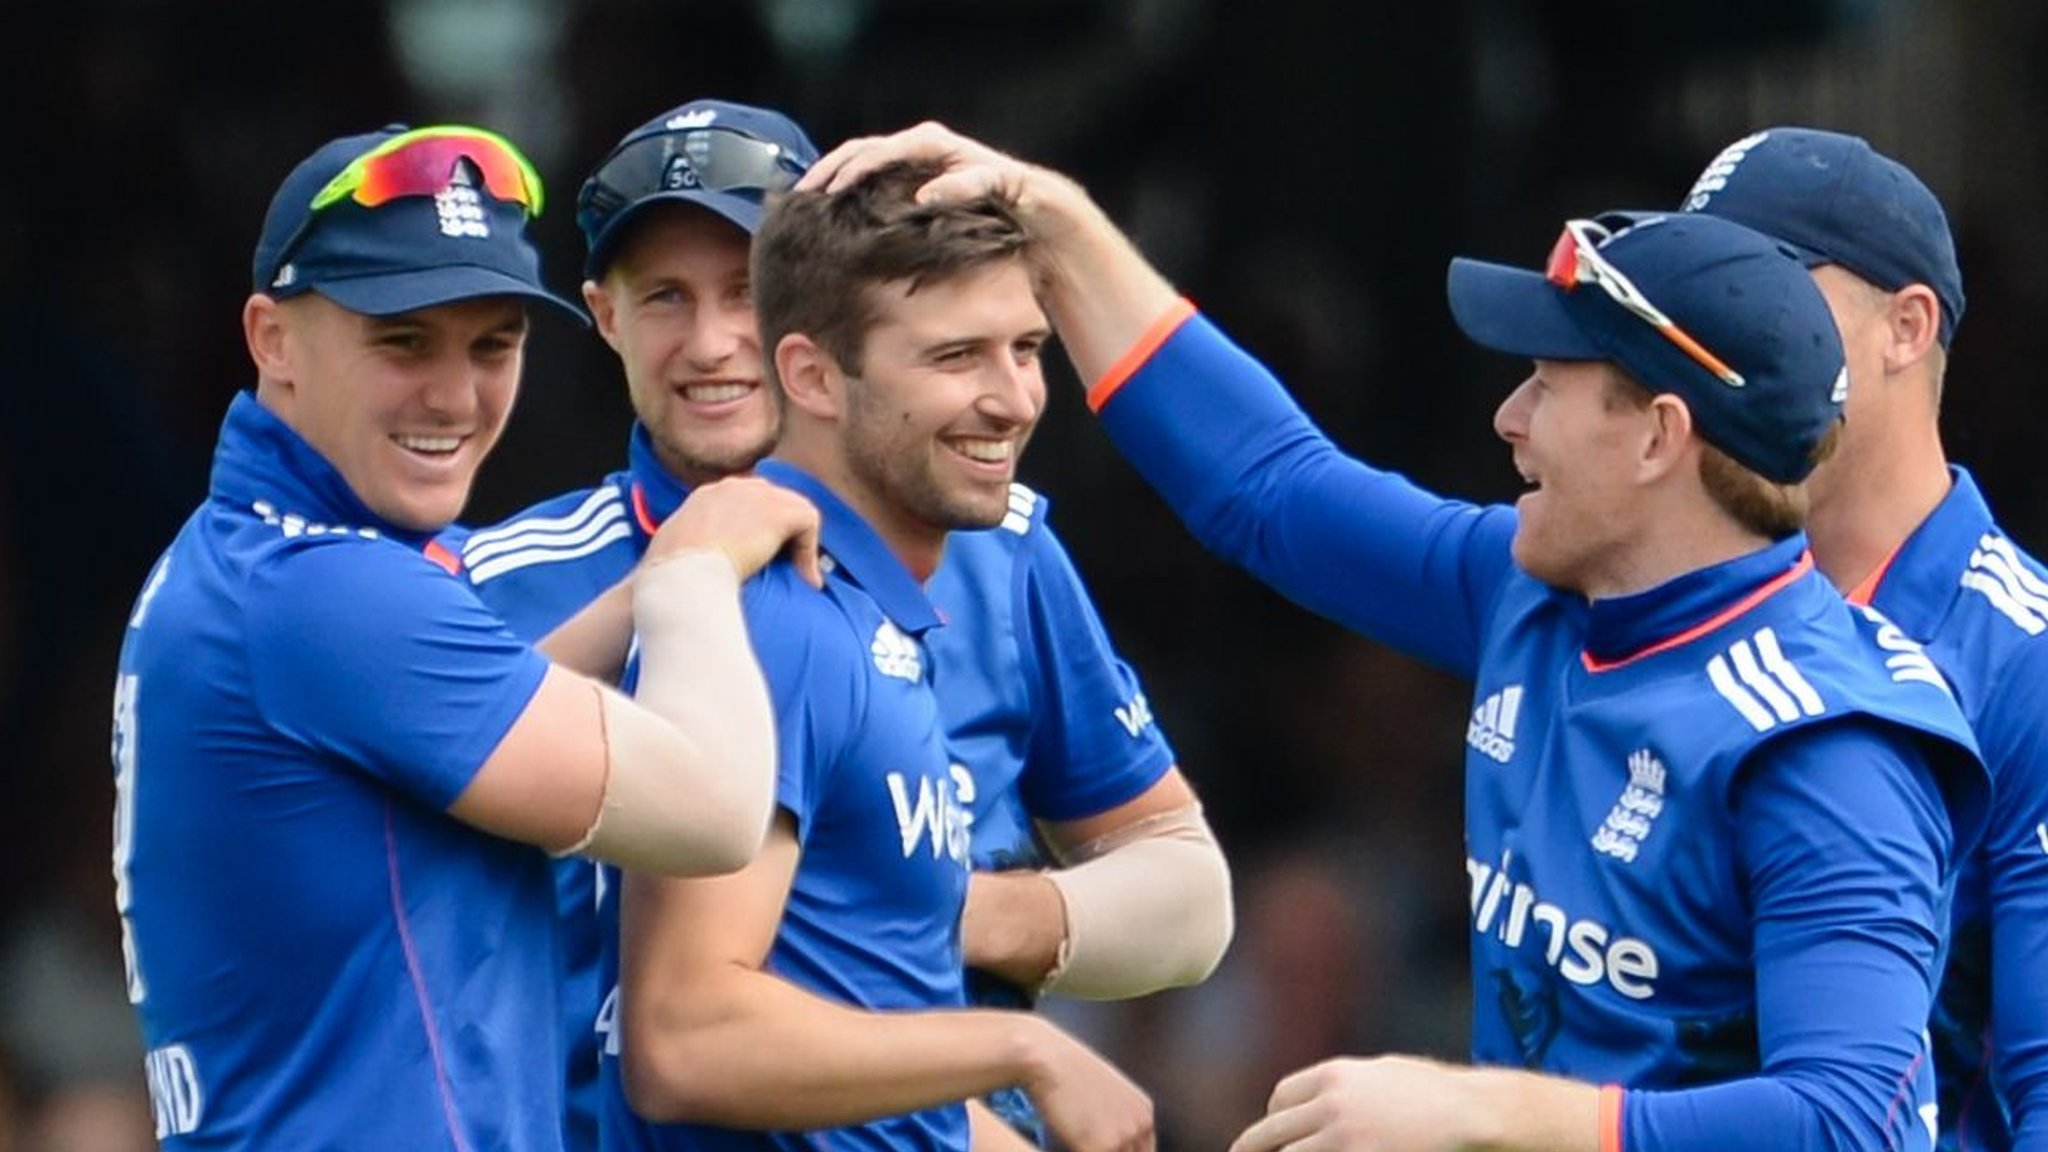 England v Pakistan: Impressive hosts win second one-day international at Lord's